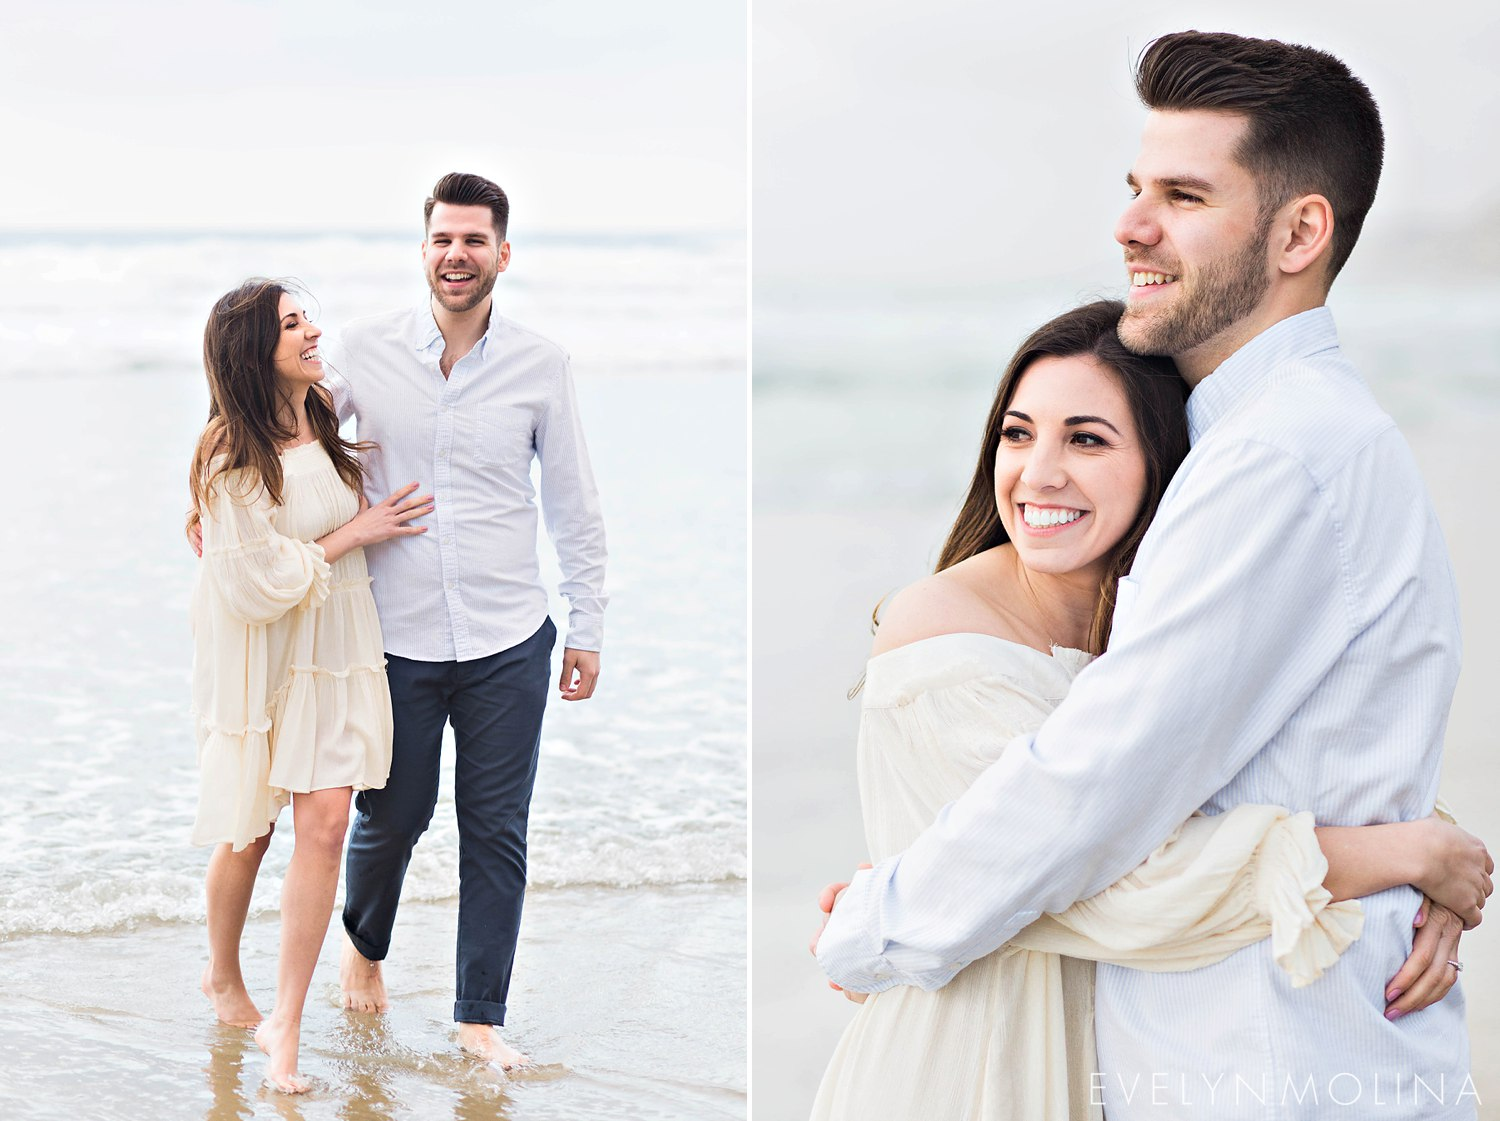 La Jolla Scripps Engagement Session - Melissa and Chris_0026.jpg